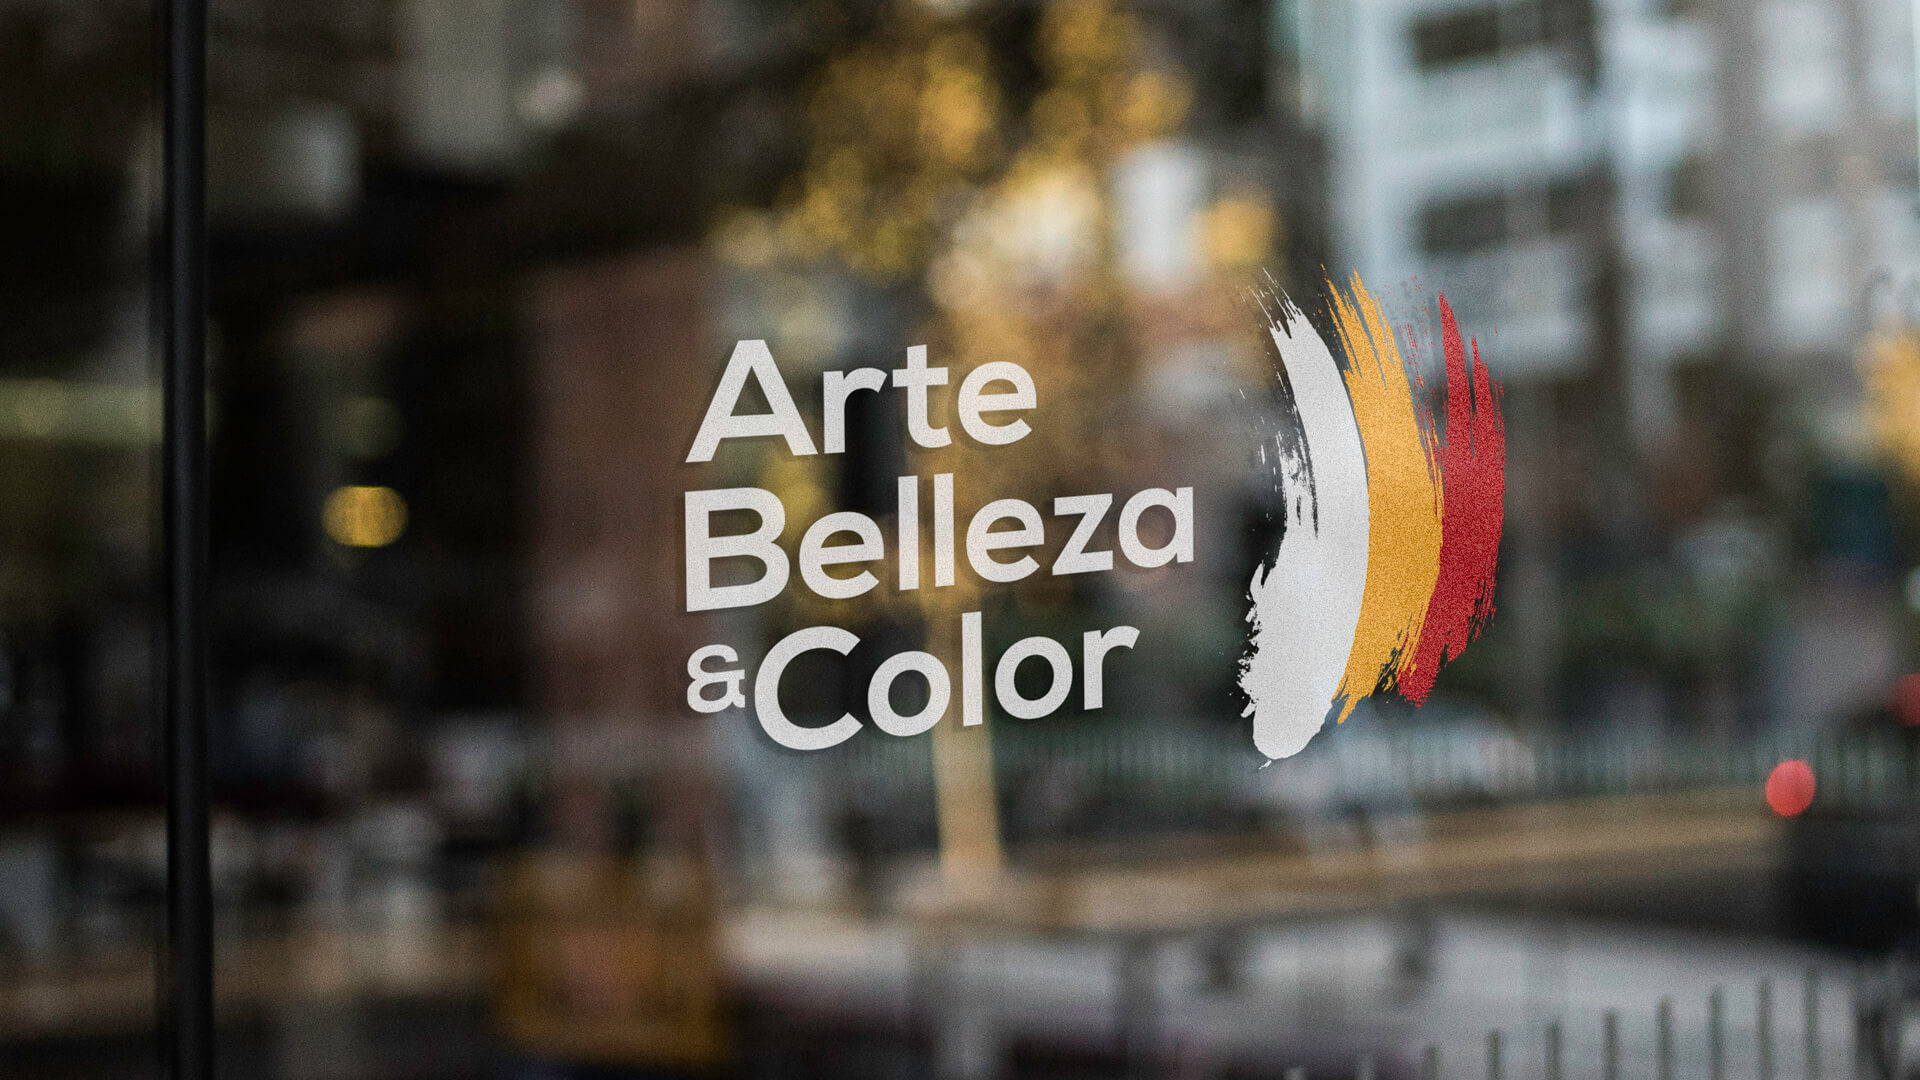 Art Belleza & Color store window